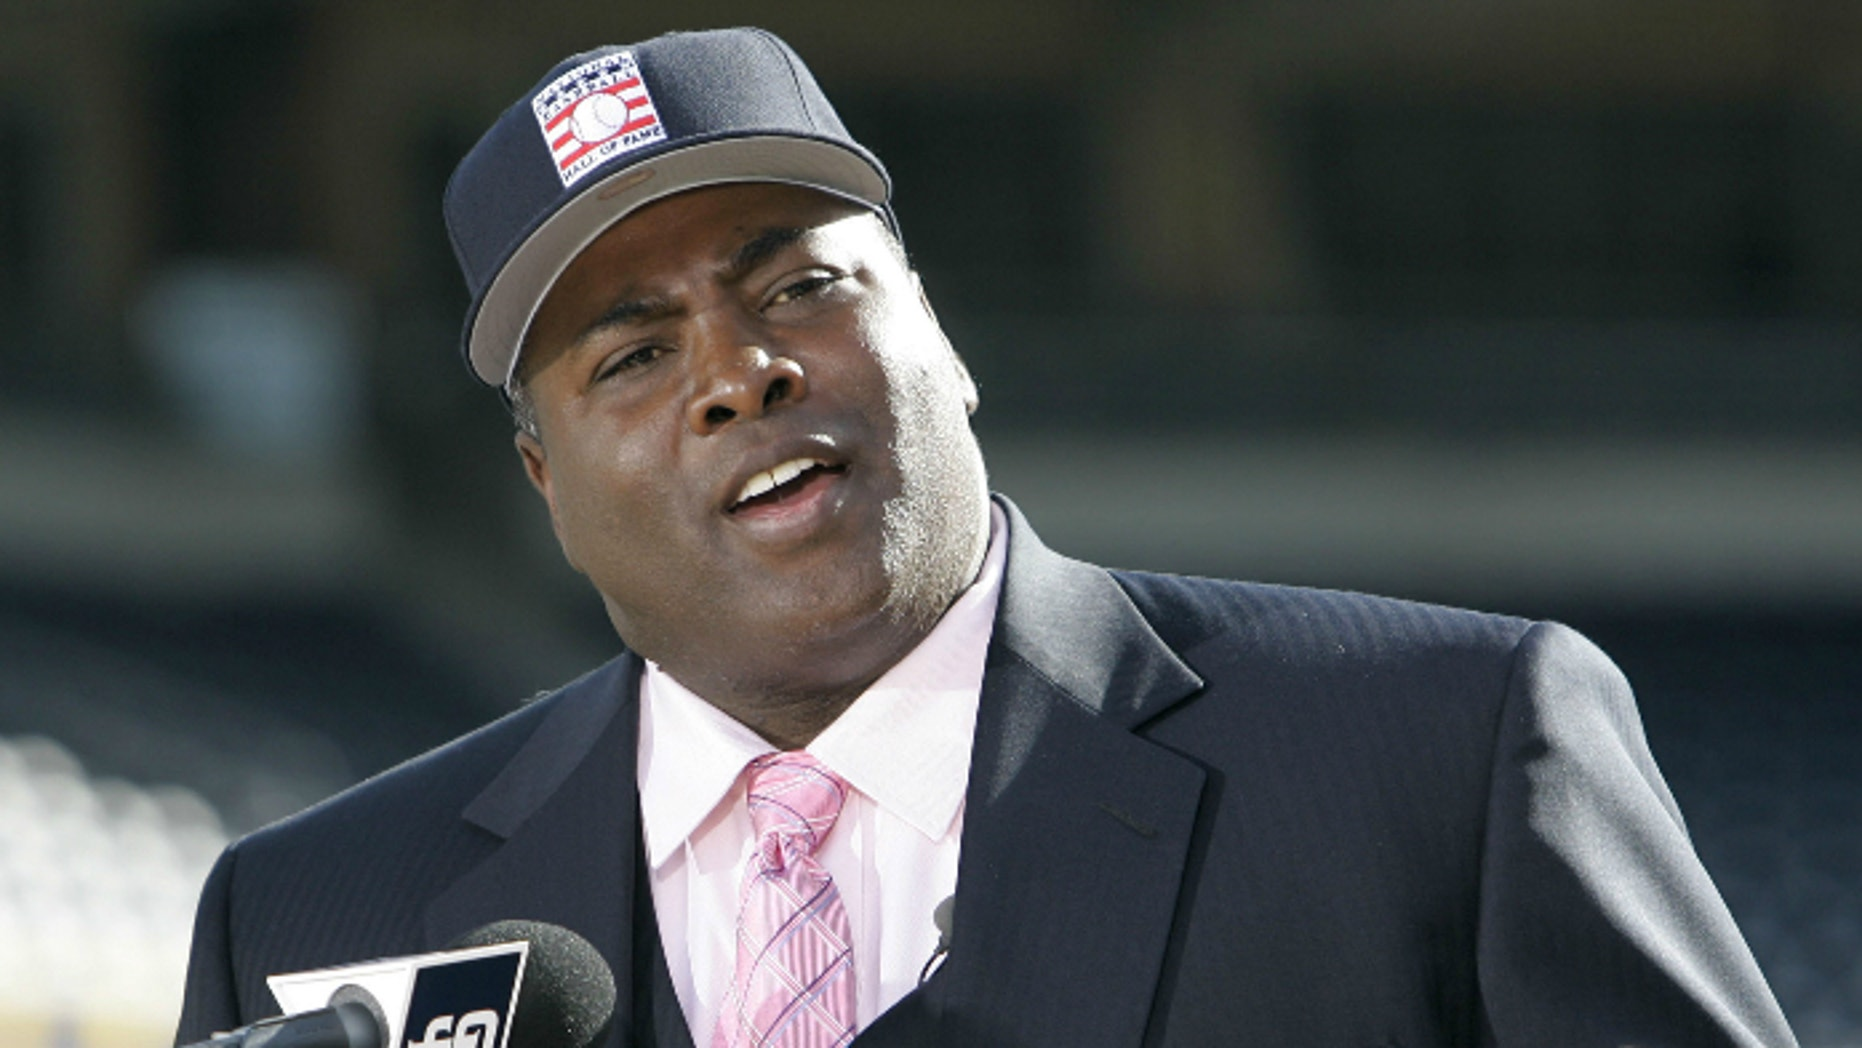 Former San Diego Padre Tony Gwynn talks about his election to the National Baseball Hall Of Fame, in San Diego. The Baseball Hall of Fame on Monday, June 16, 2014 said Gwynn has died of cancer. He was 54.